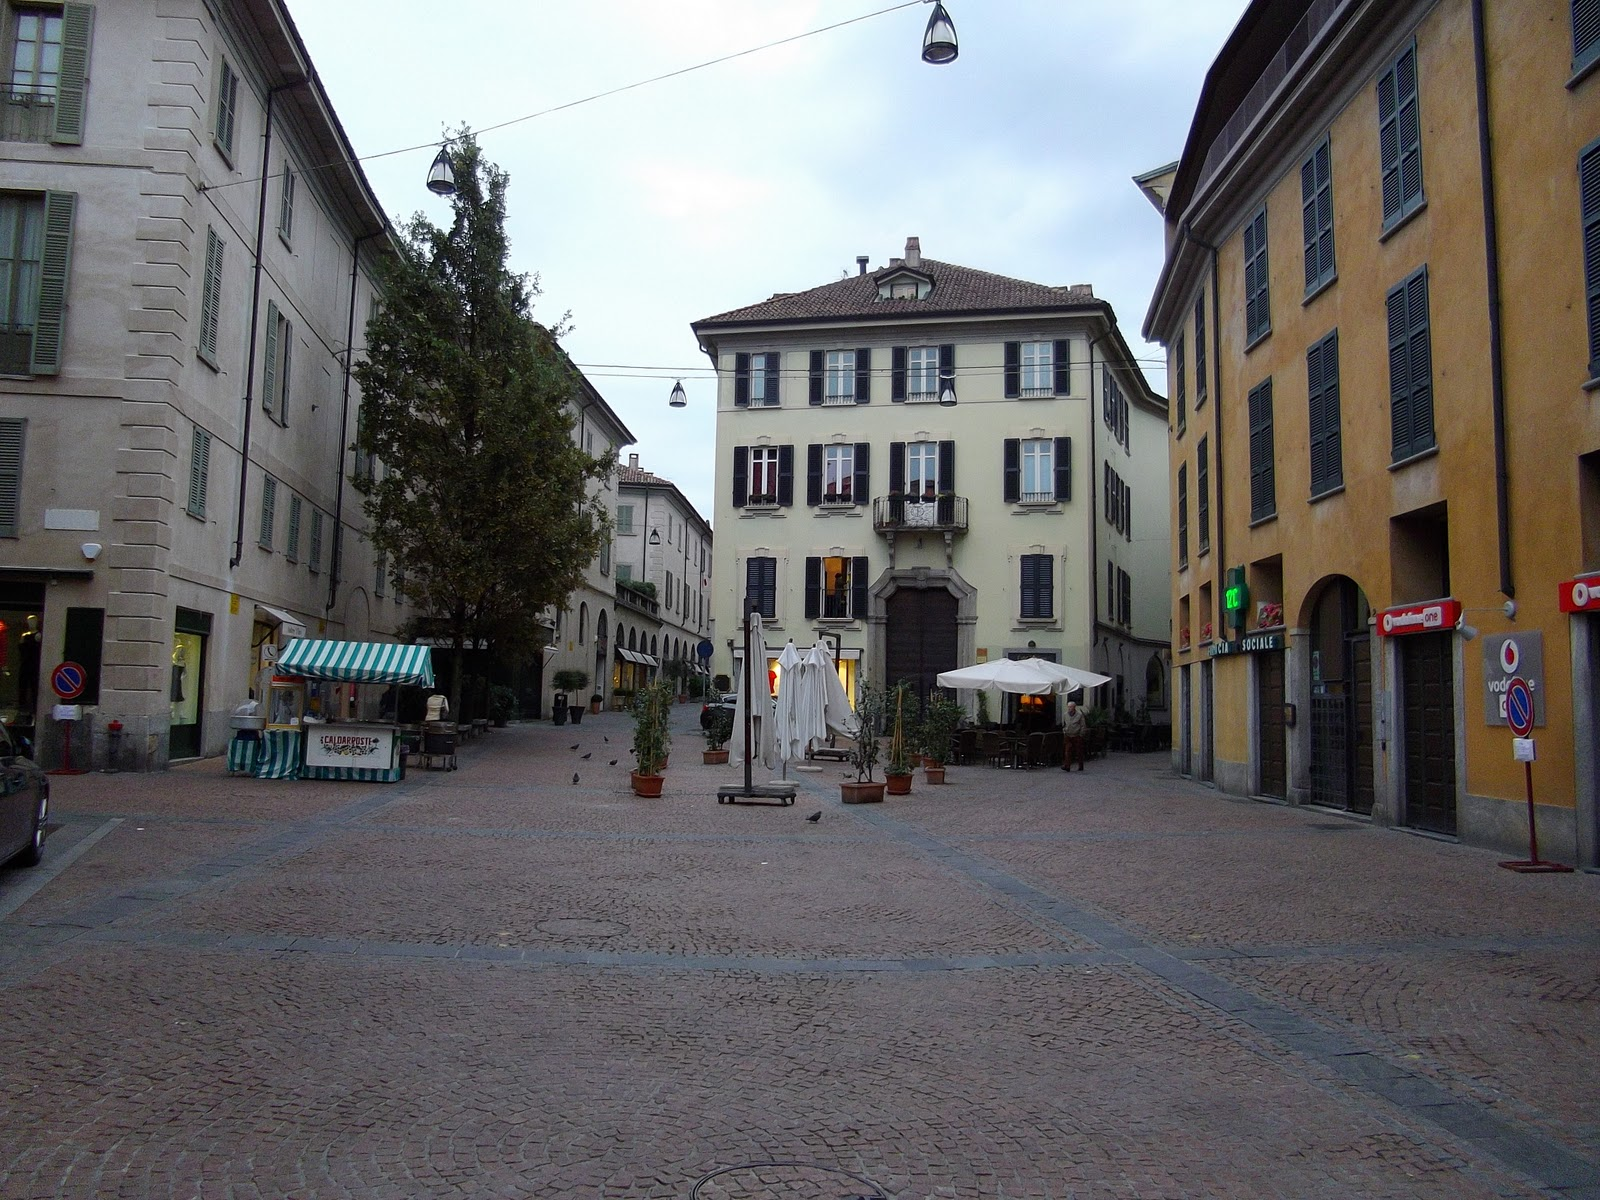 Varese Italy  city photos gallery : Trip to Varese, Italy   Life in Luxembourg